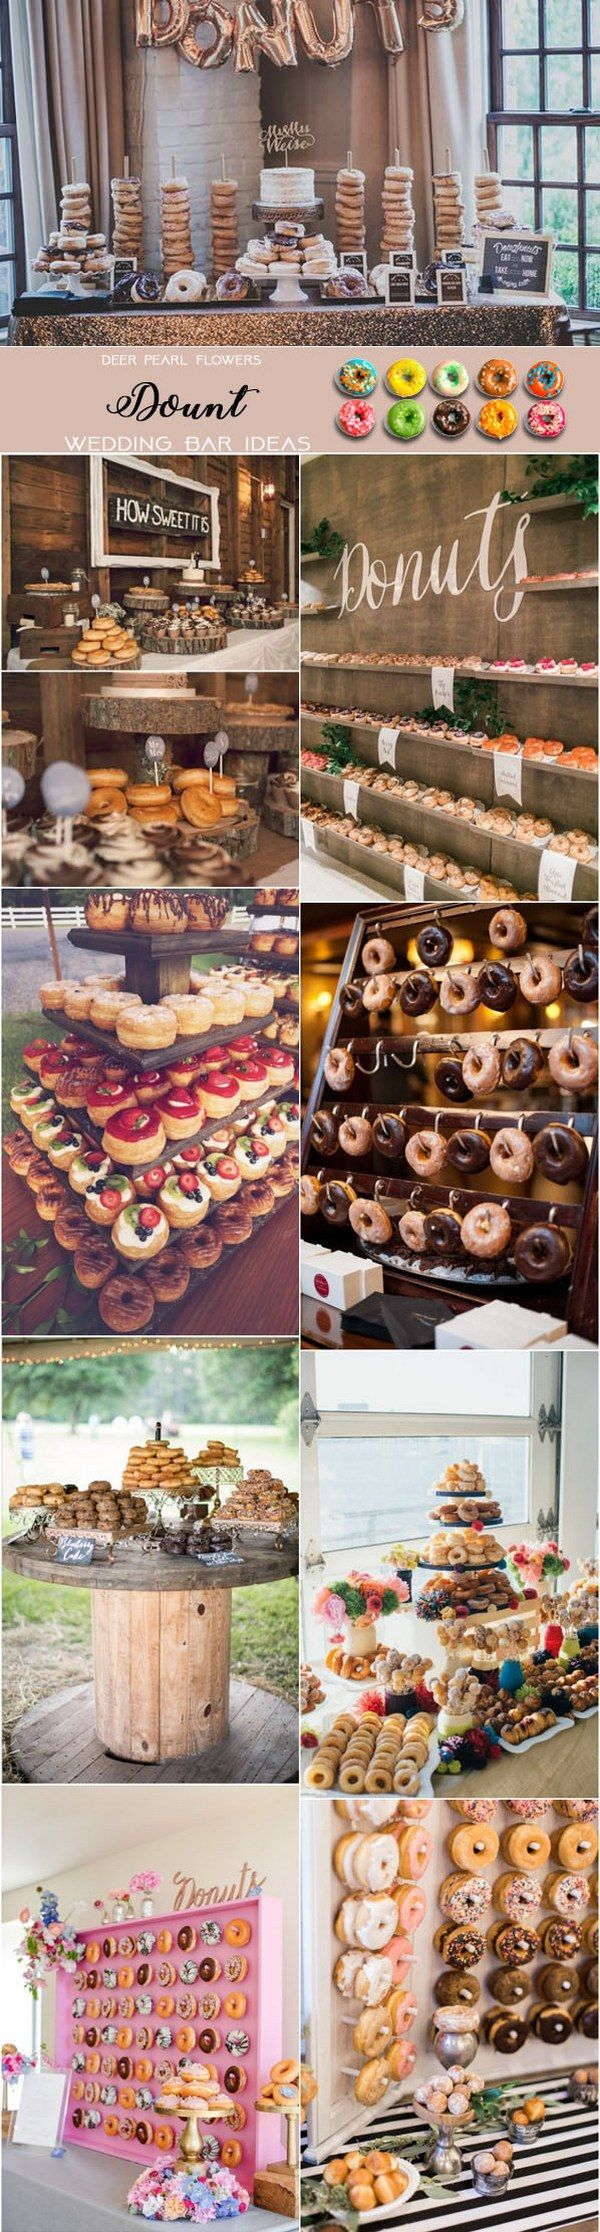 Dount wedding dessert food bar ideas for wedding reception / http://www.deerpearlflowers.com/wedding-catering-trends-dessert-bar-ideas/2/